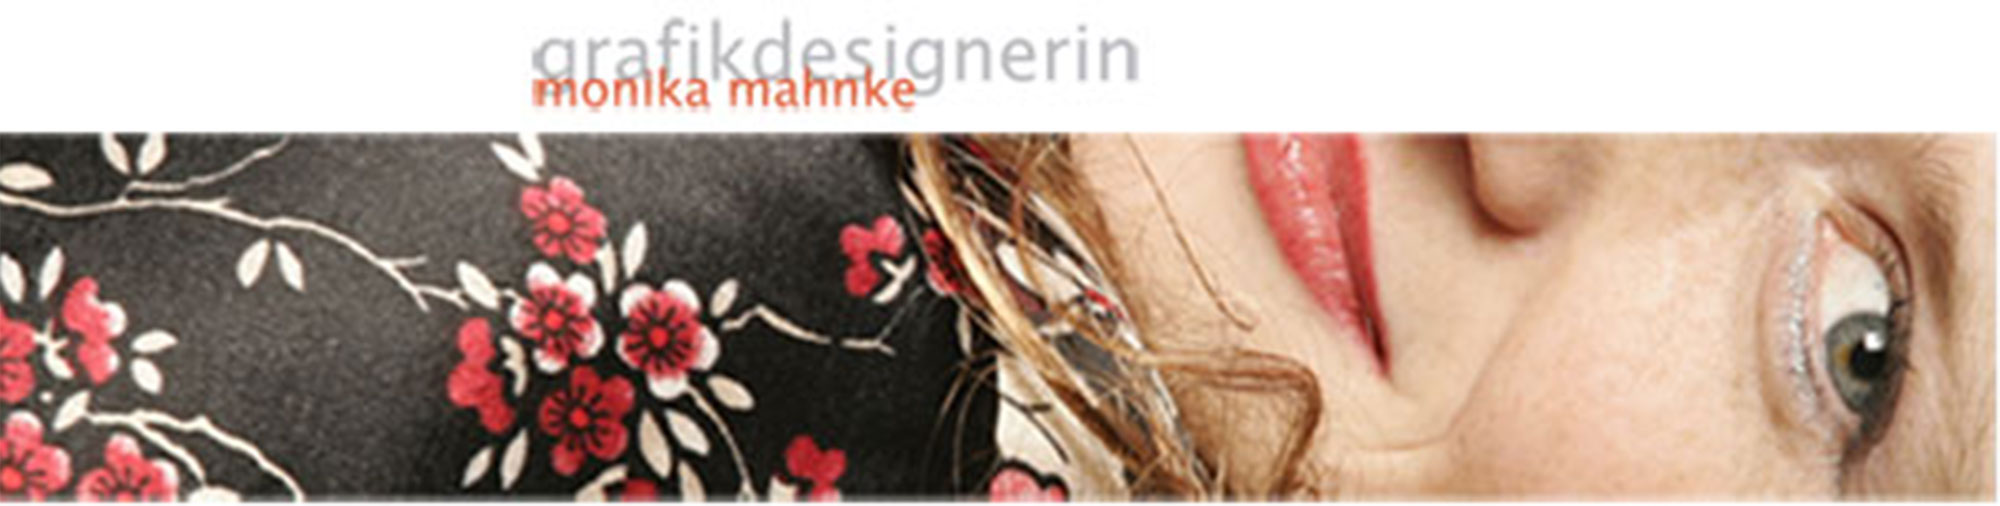 Monika Mahnke Grafikdesign